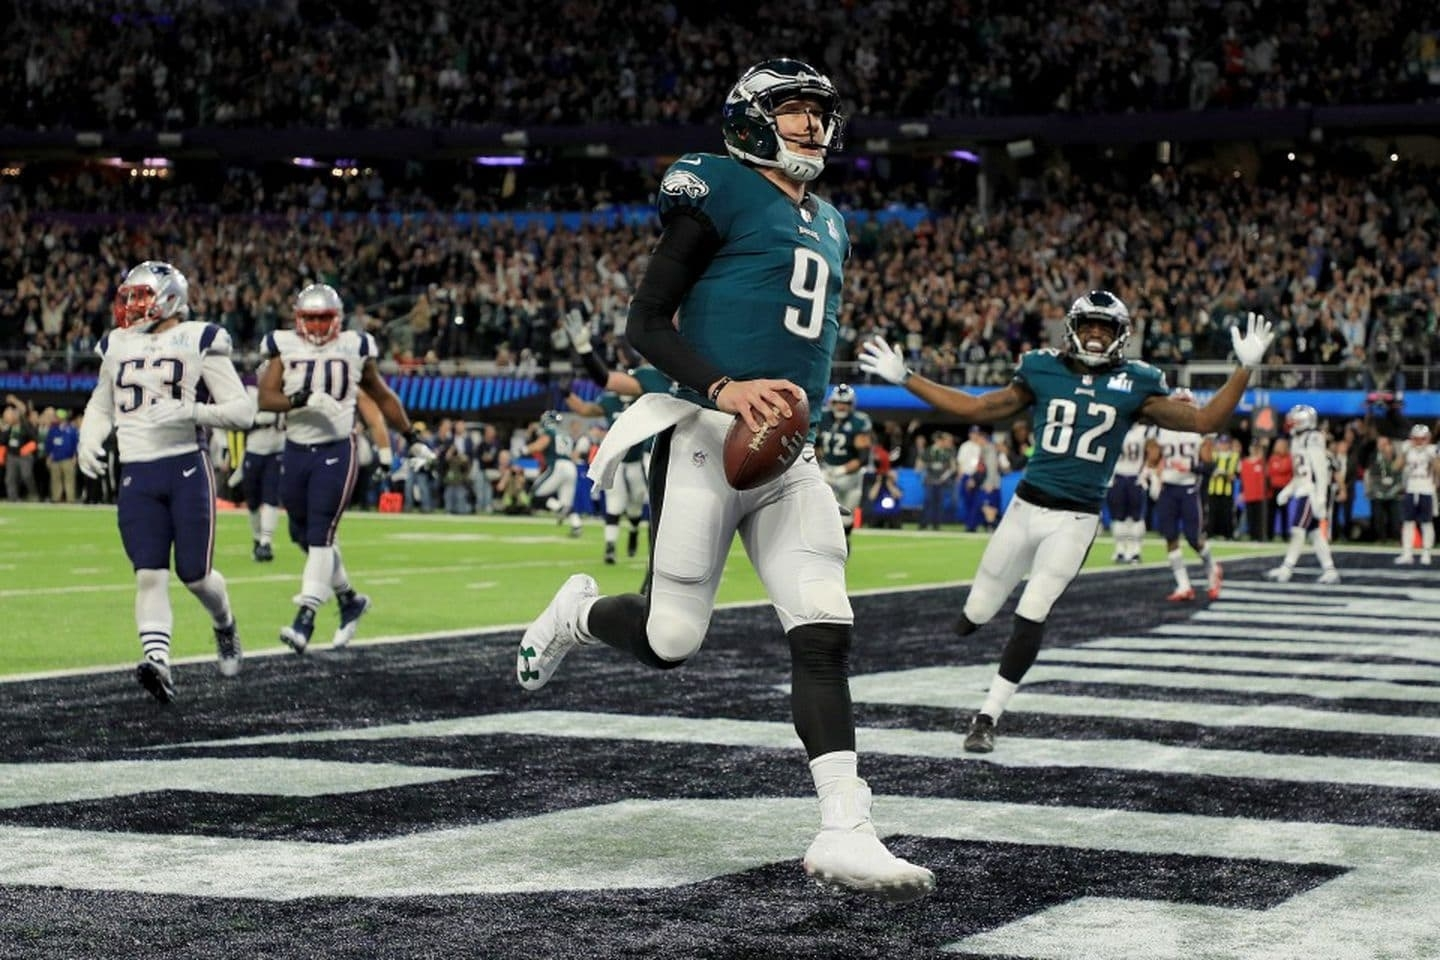 Super Bowl 52: Nick Foles Is A Deserving Mvp After 373-Yard throughout Super Bowl Mvp Voting